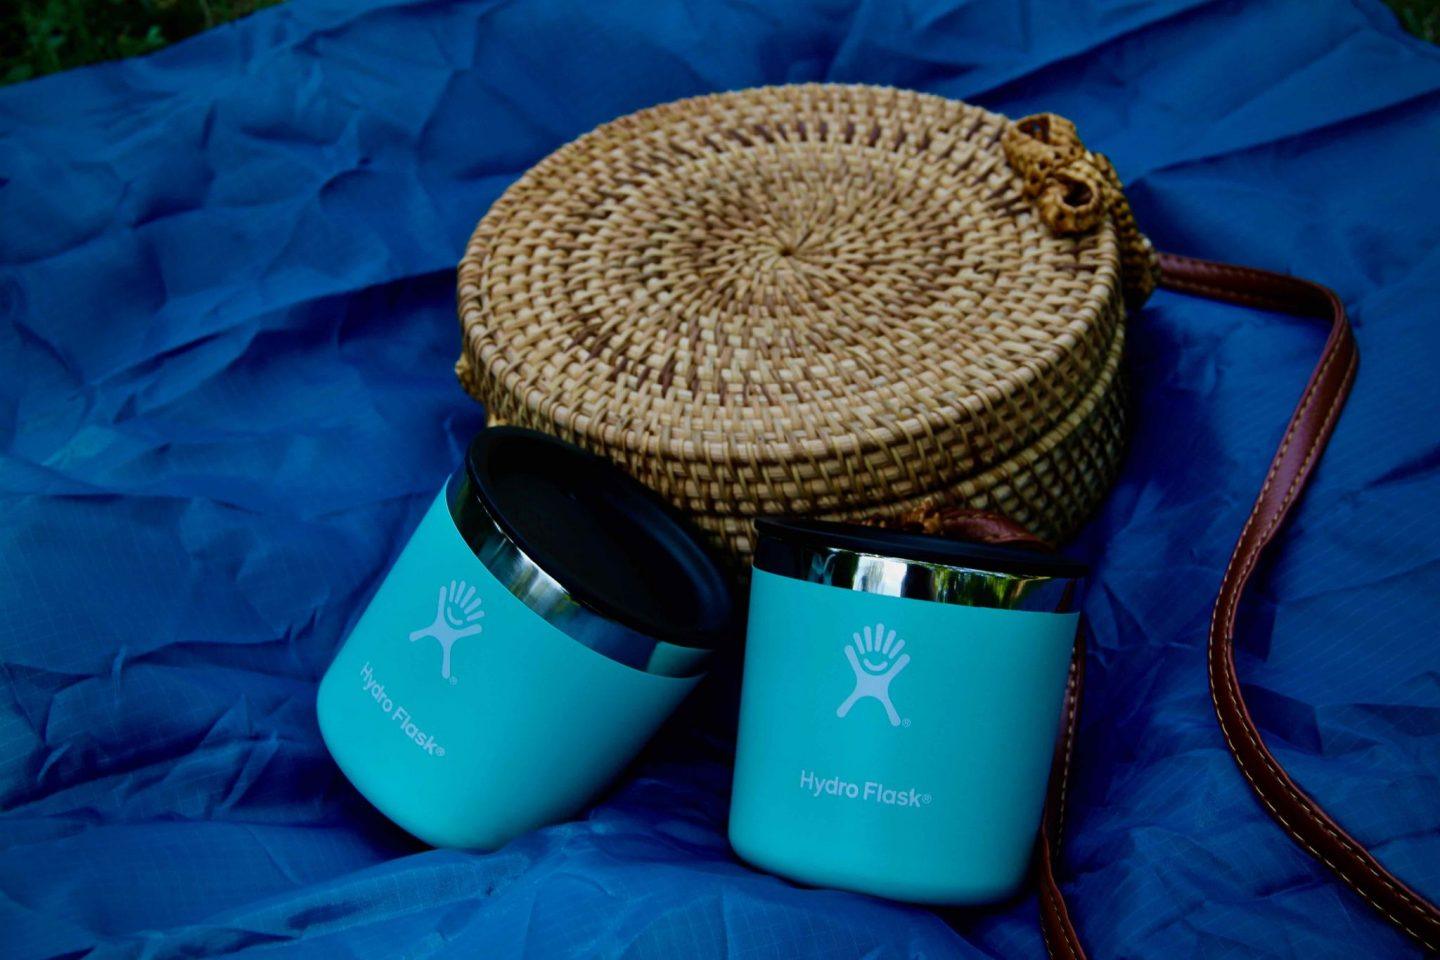 Straw Purses & Hydro Flask Cups for Summer Picnics ... The Spectacular Adventurer